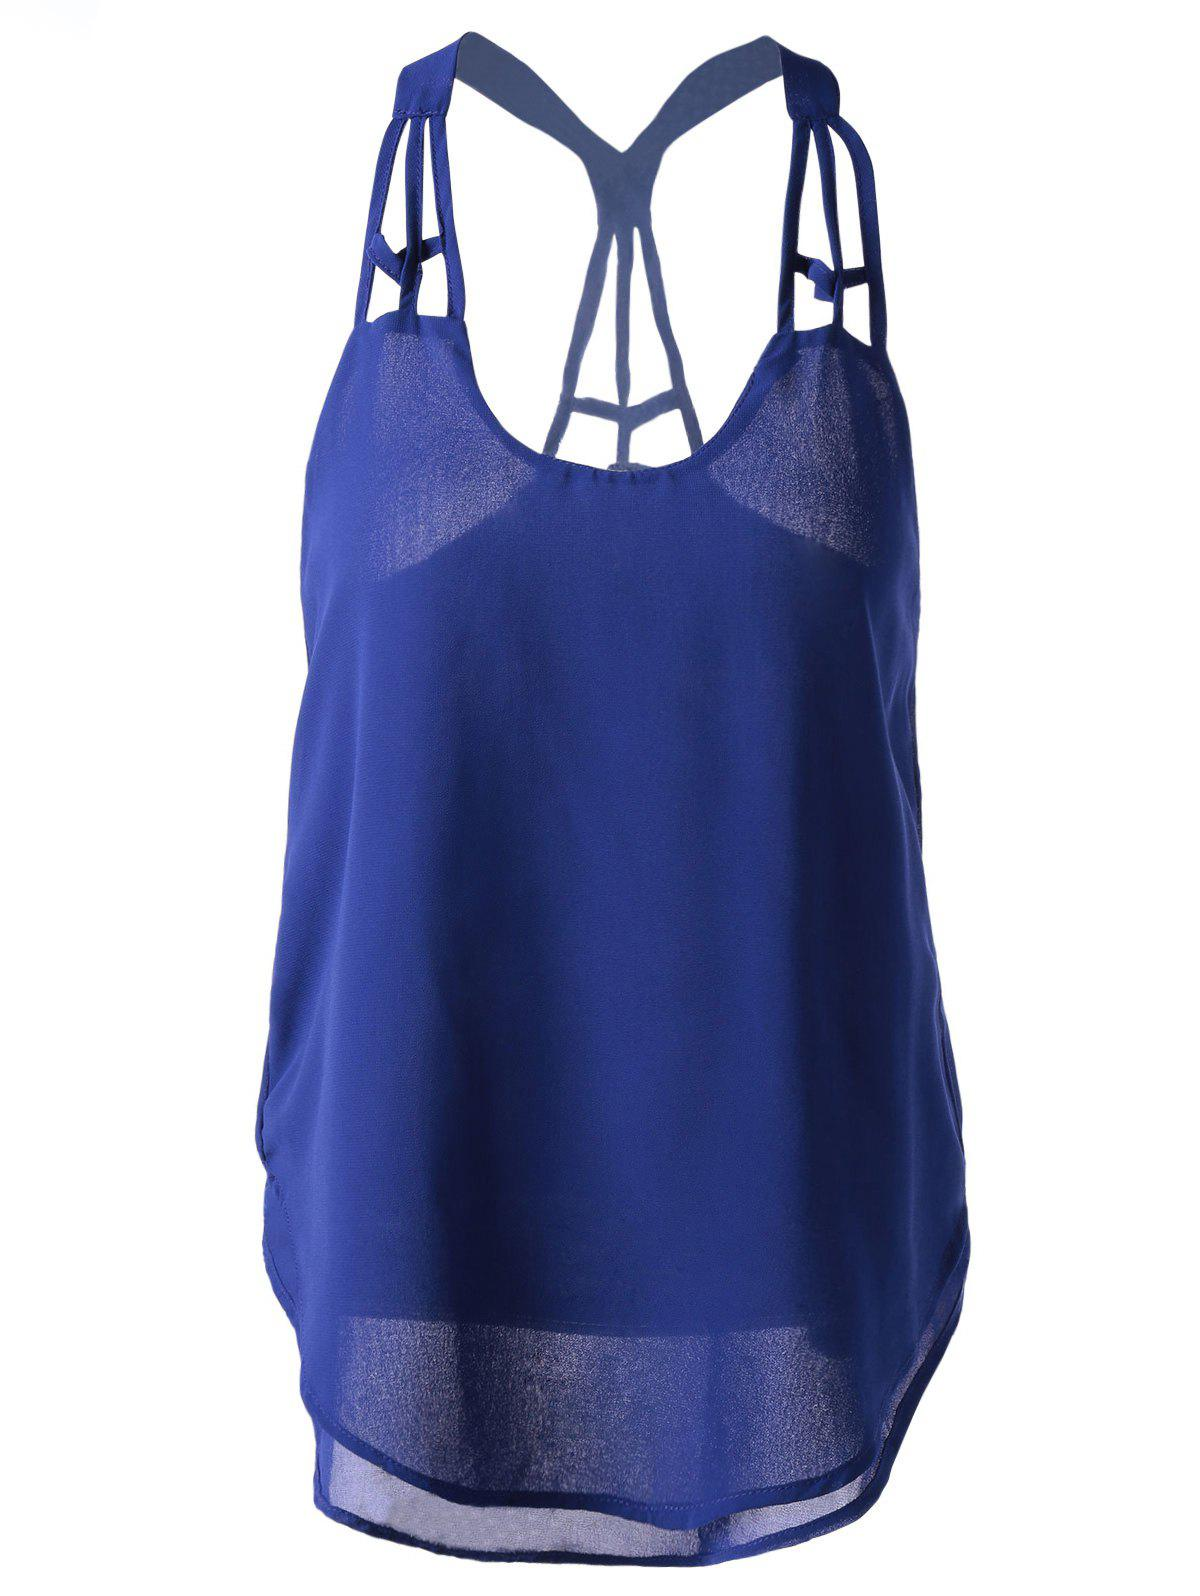 Stylish Loose-Fitting Tank Top For Women - SAPPHIRE BLUE ONE SIZE(FIT SIZE XS TO M)